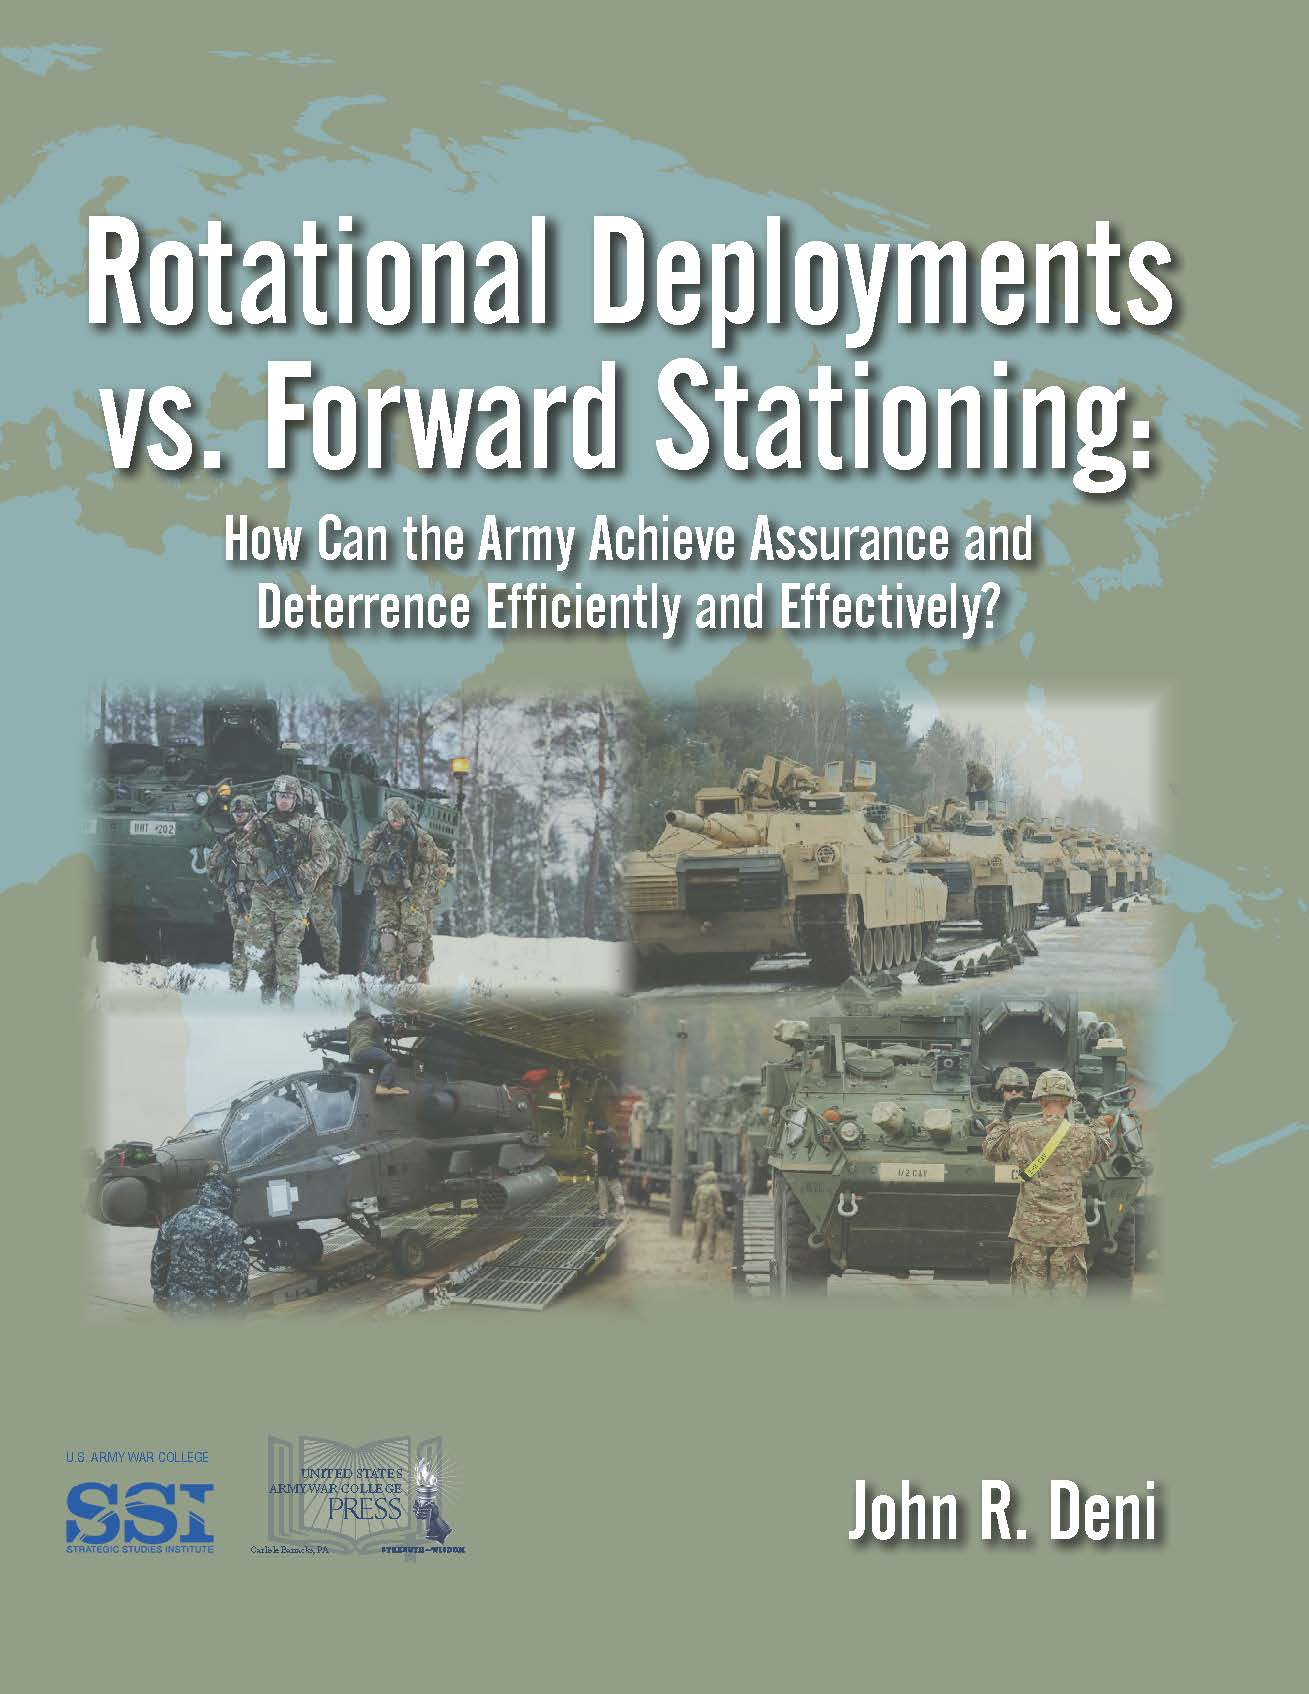 Rotational Deployments vs. Forward Stationing: How Can the Army Achieve Assurance and Deterrence Efficiently and Effectively?